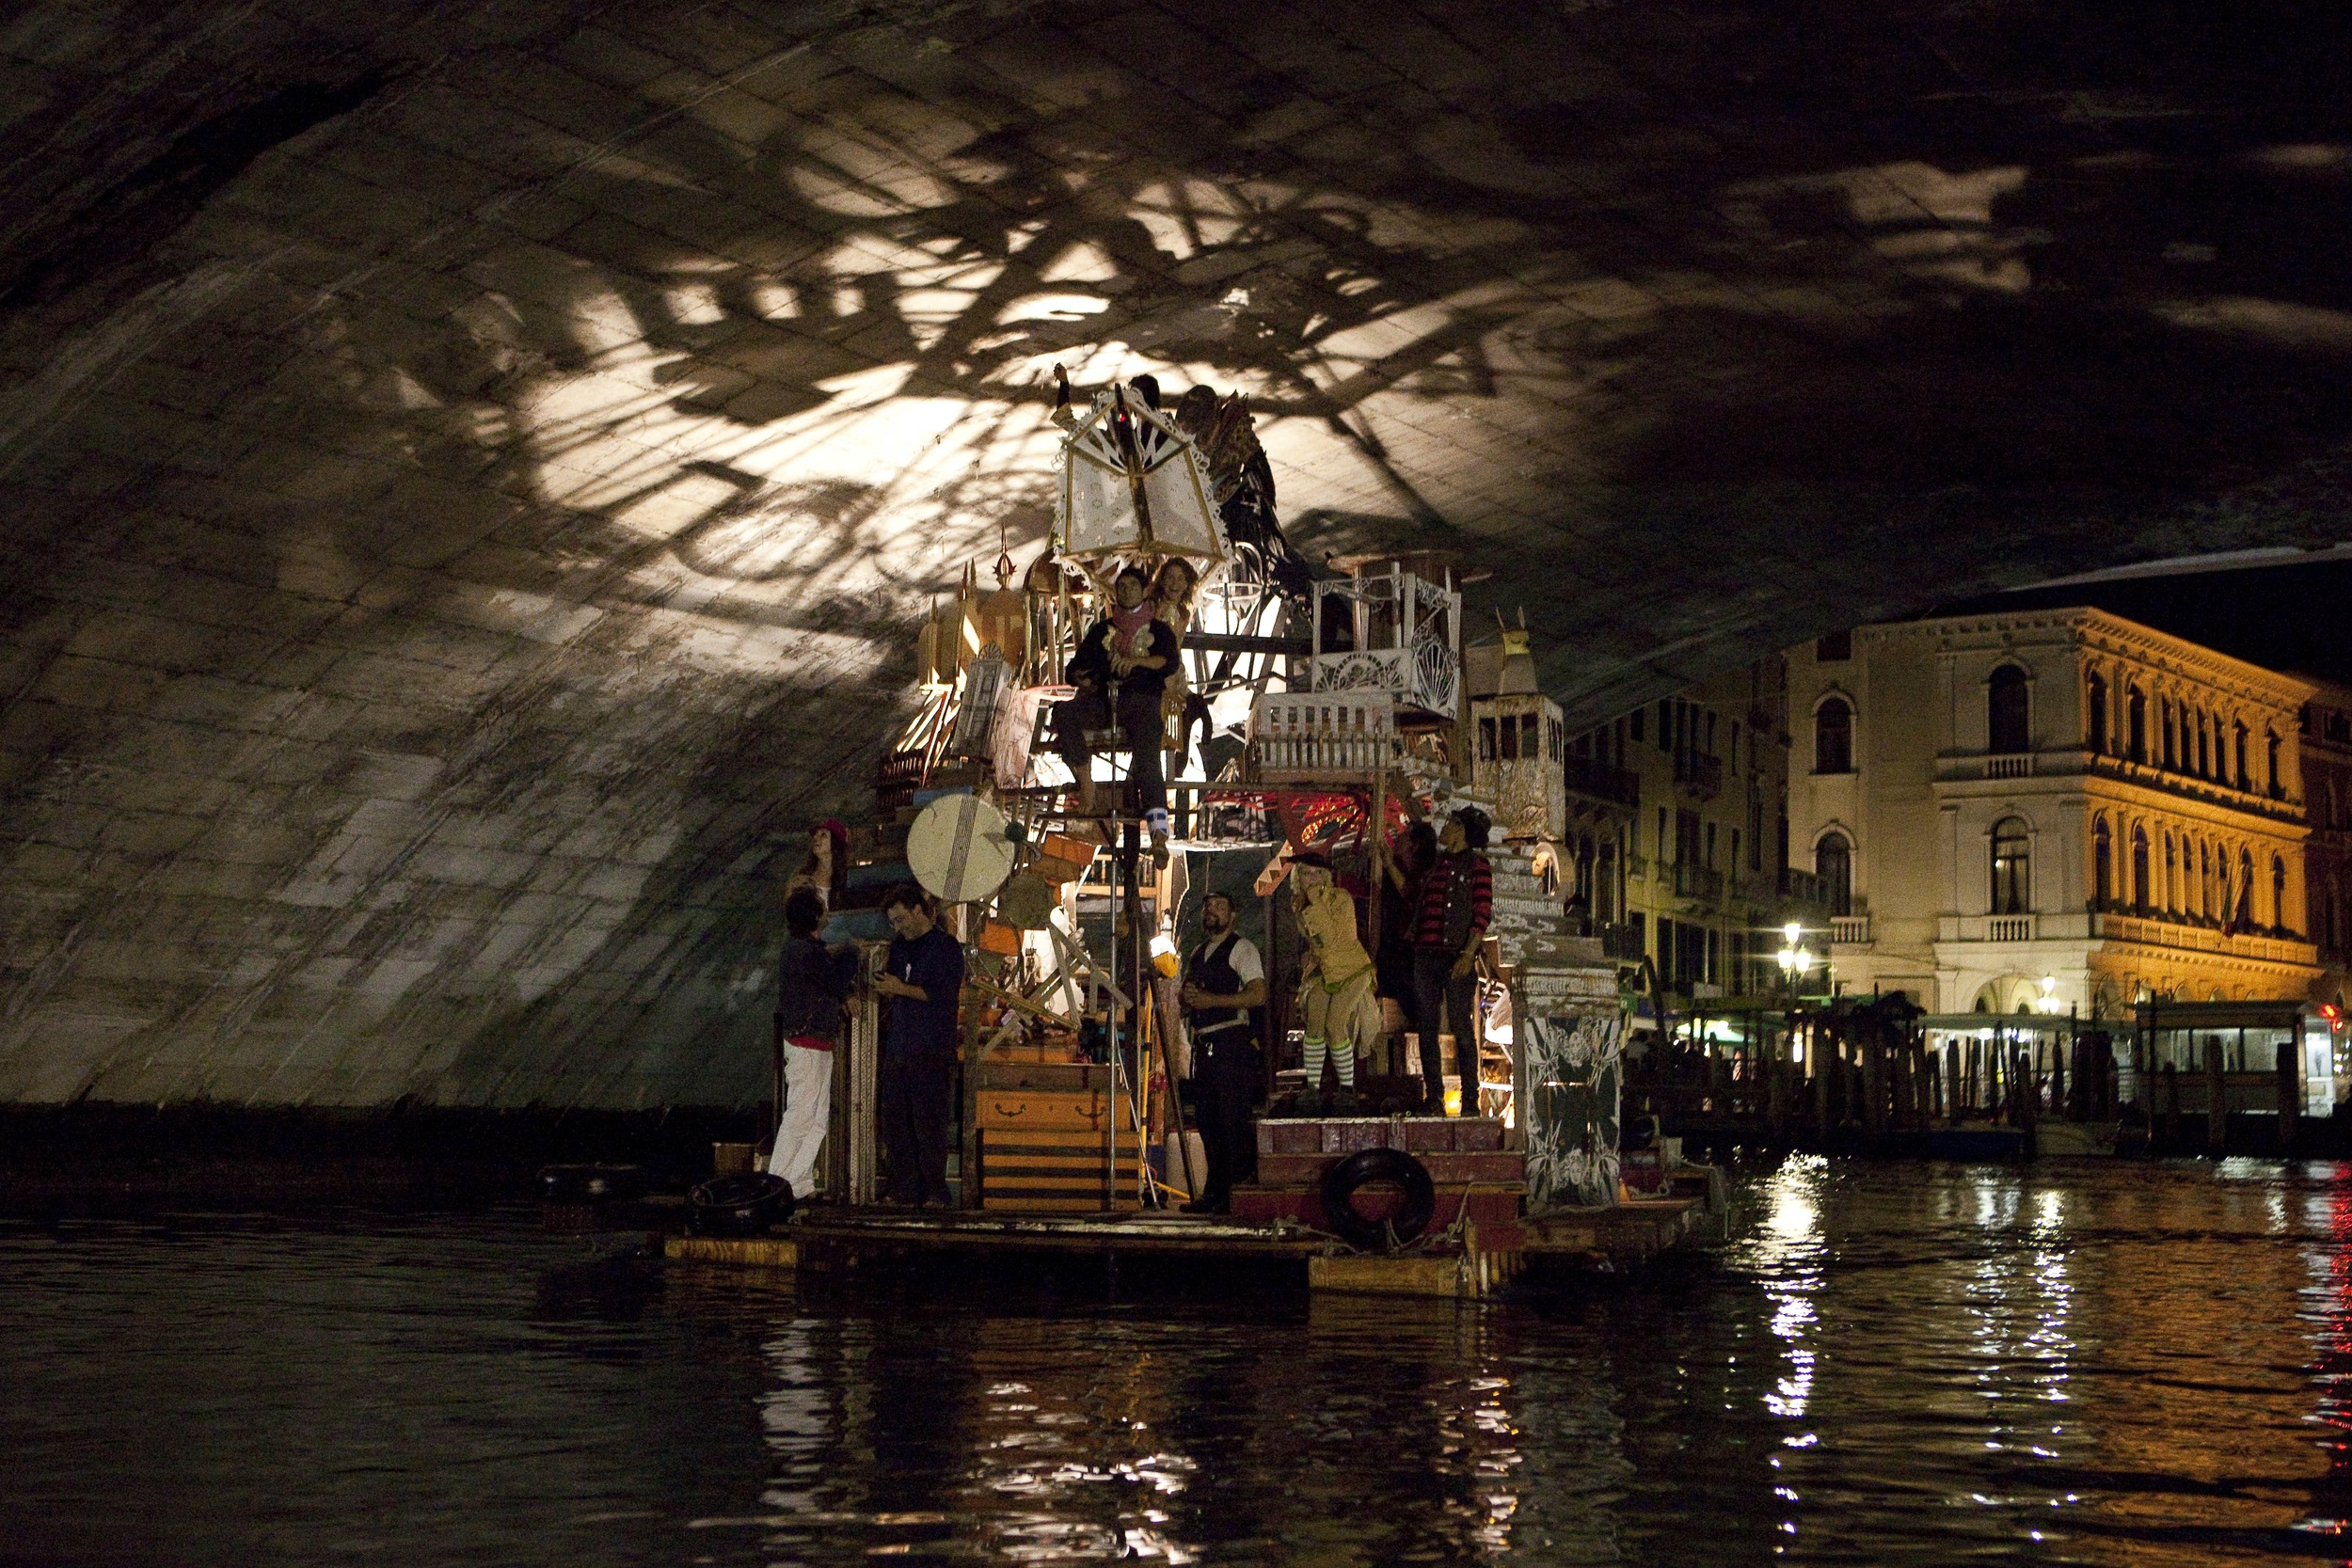 Swimming Cities of Serenissima : Stopping along the way to perform live music, puppetry, and more, Swoon and 35 artistic collaborators sailed across the Adriatic Sea from Slovenia to the 2009 Venice Biennale. ( Photo : Tod Seelie)